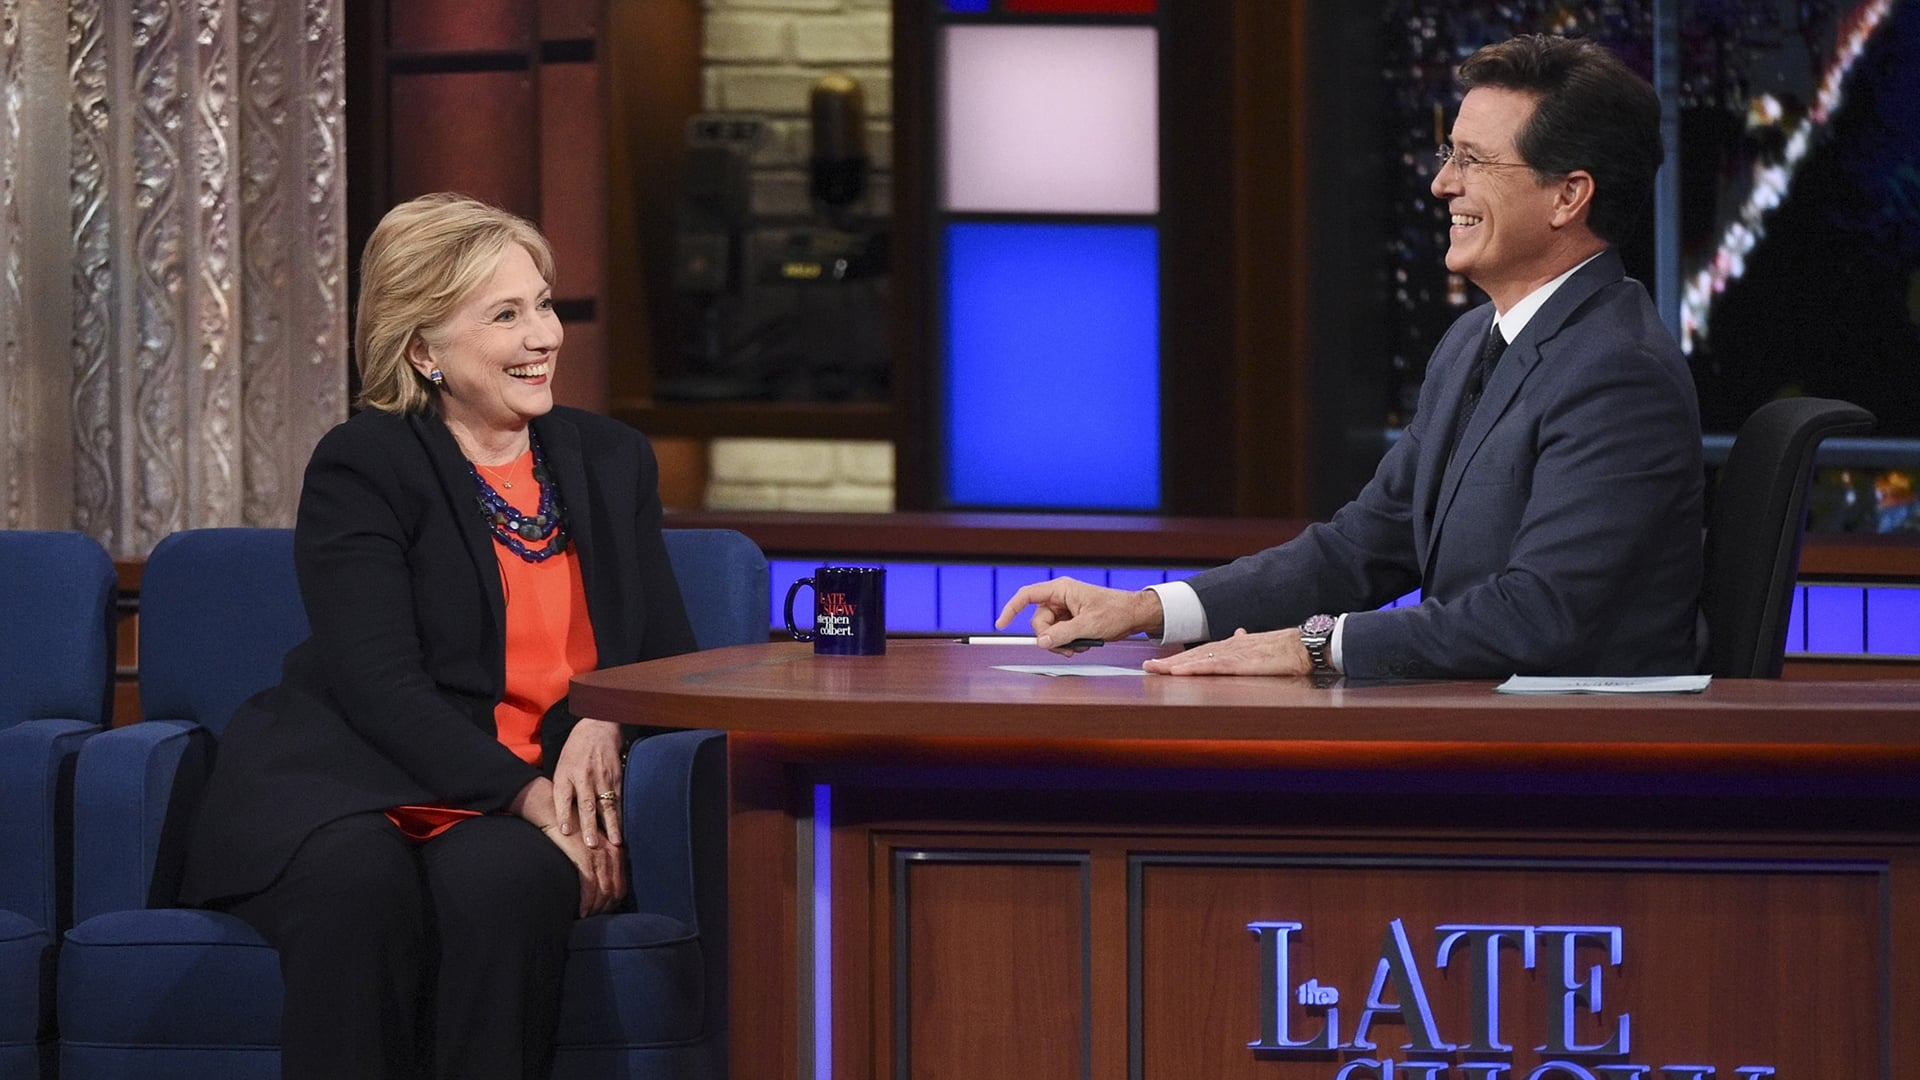 The Late Show with Stephen Colbert Season 1 :Episode 31  Hillary Clinton, Anthony Bourdain, Carrie Brownstein, Lianne La Havas